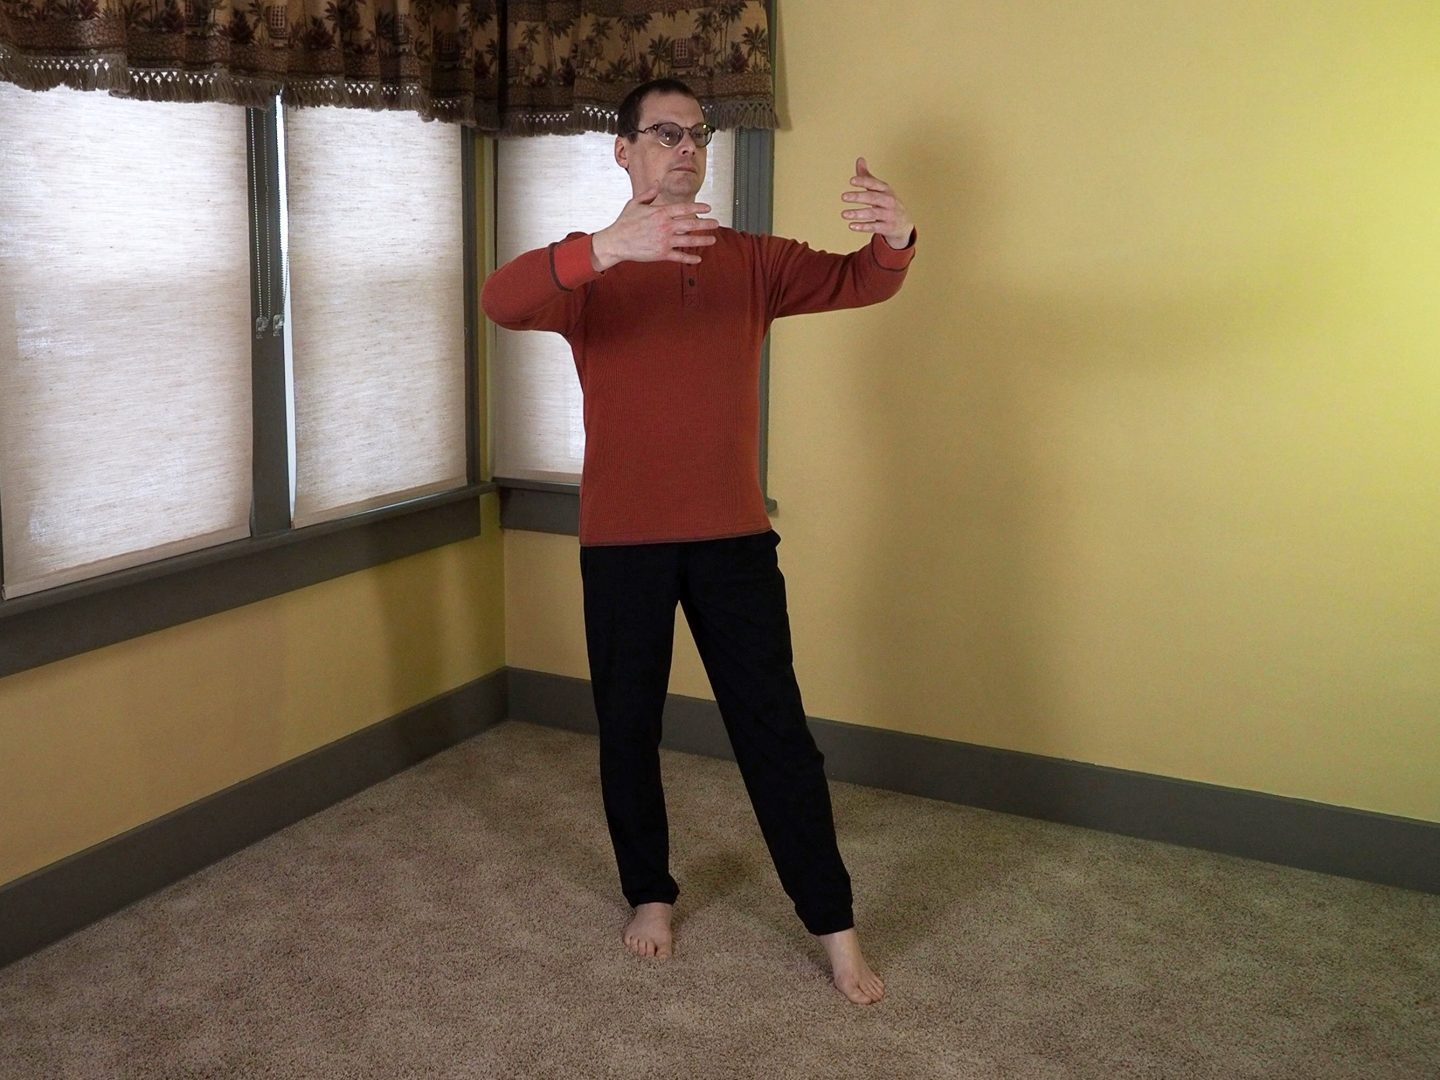 The Yin Yang posture also known as The Universal Post Posture.